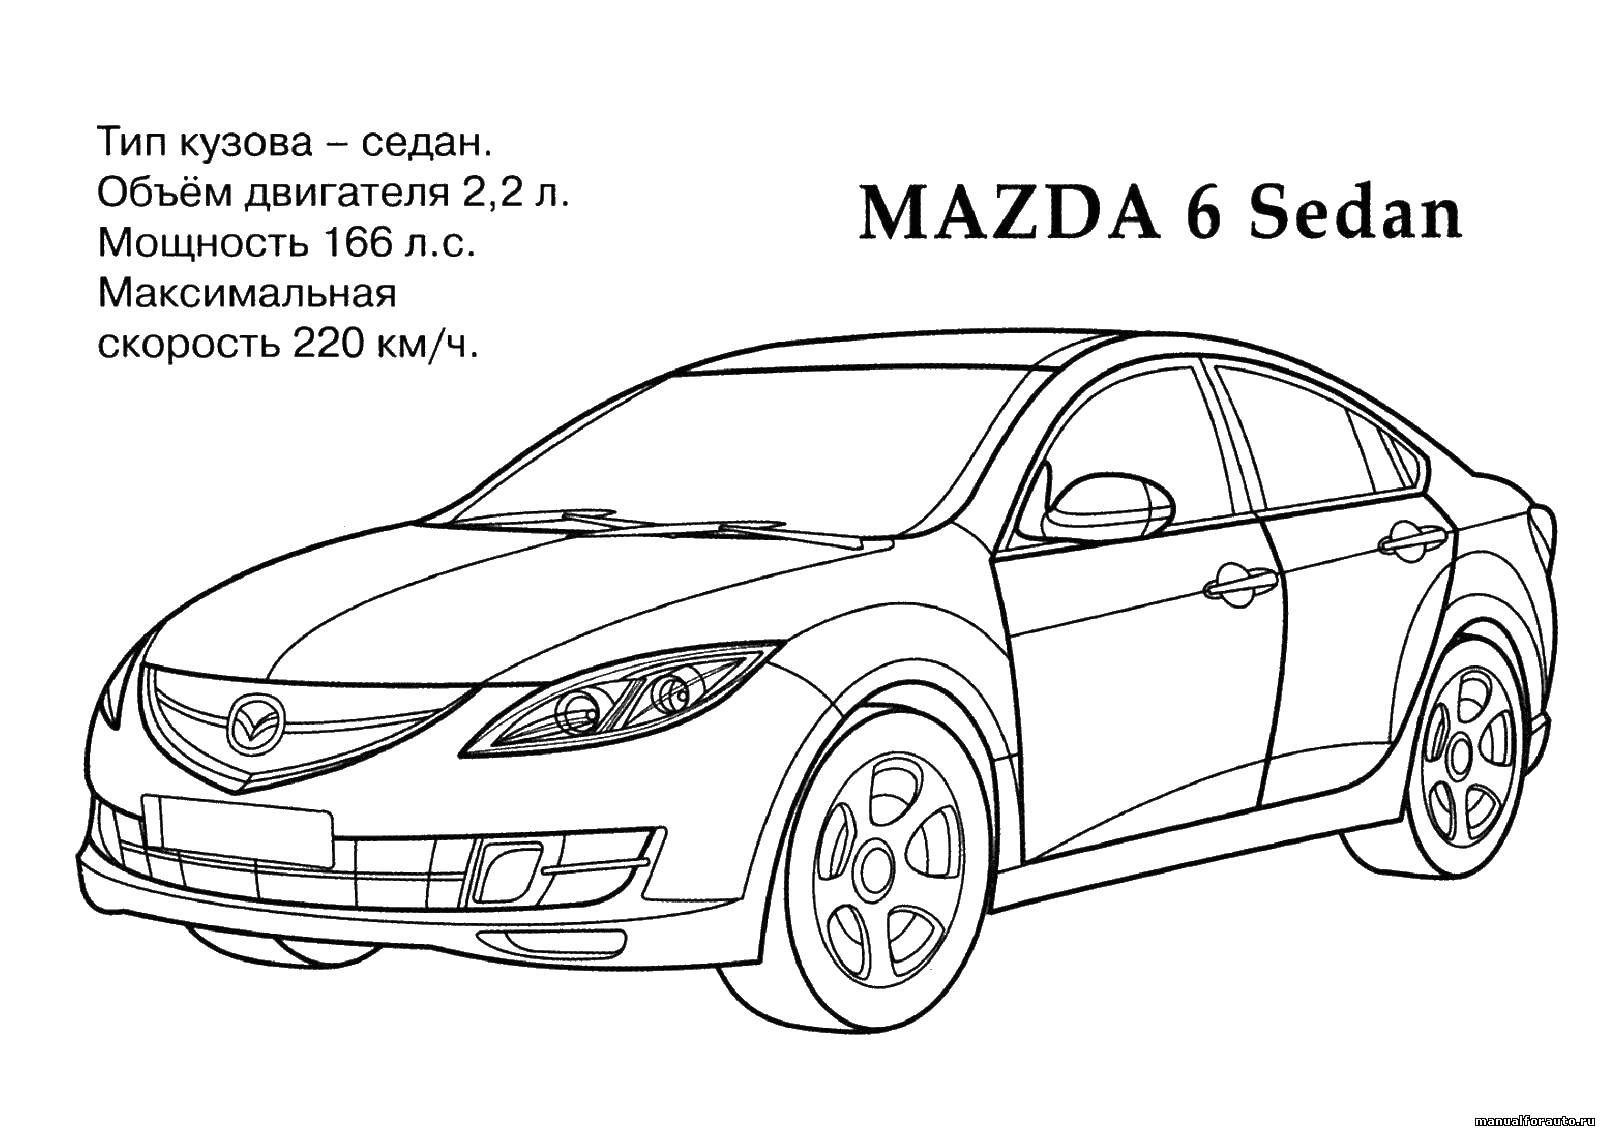 Online coloring pages Coloring page Mazda 6 sedan coloring